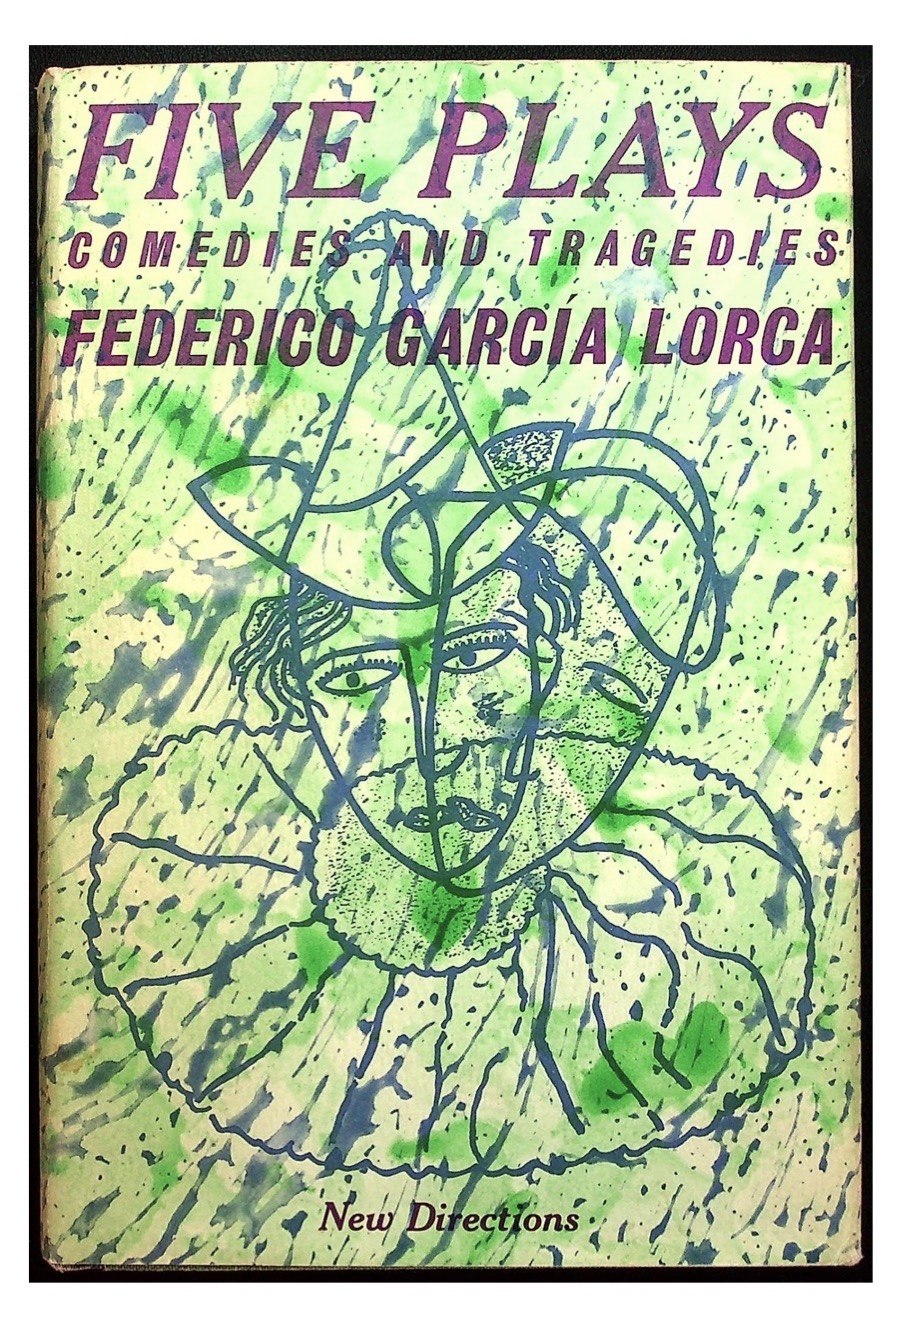 Five Plays, Comedies and Tragicomedies. Translated by James Graham-Lujan and Richard L. O'Connell. Federico García LORCA.